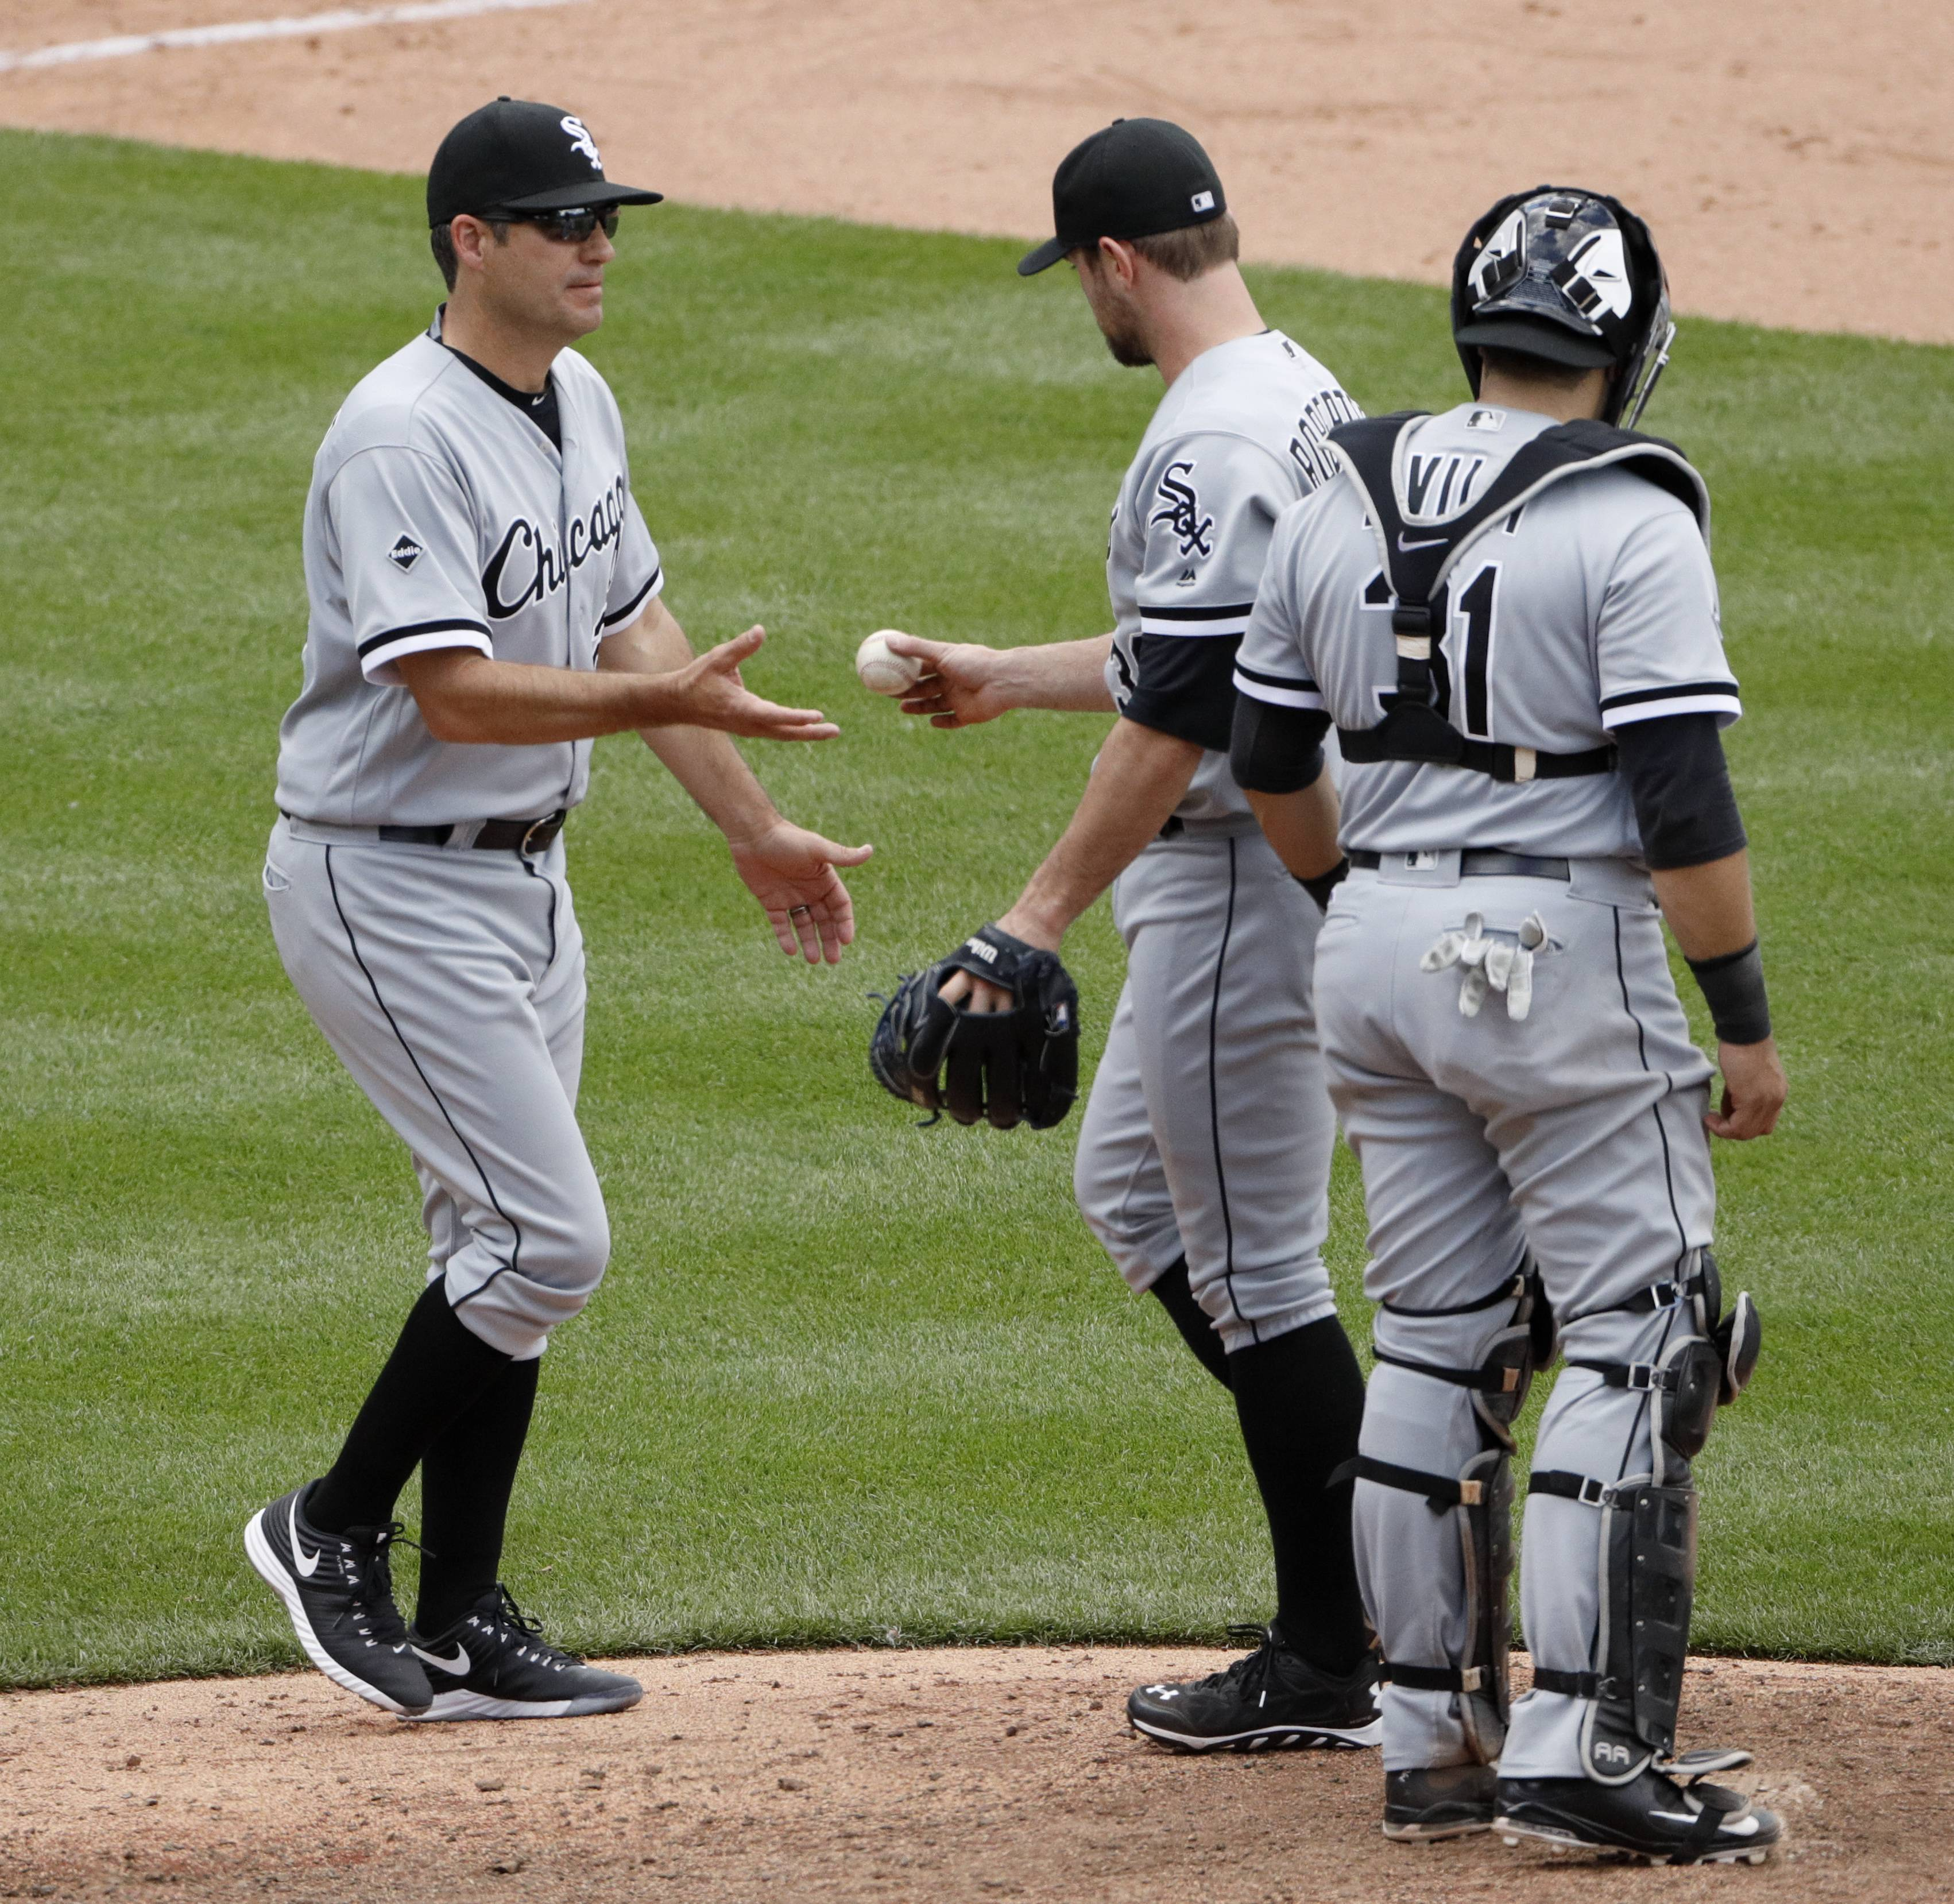 Chicago White Sox manager Robin Ventura, left, takes the ball from relief pitcher David Robertson as he makes pitching change during the ninth inning of a baseball game against the Kansas City Royals Saturday, May 28, 2016, in Kansas City, Mo. The Royals won 8-7.